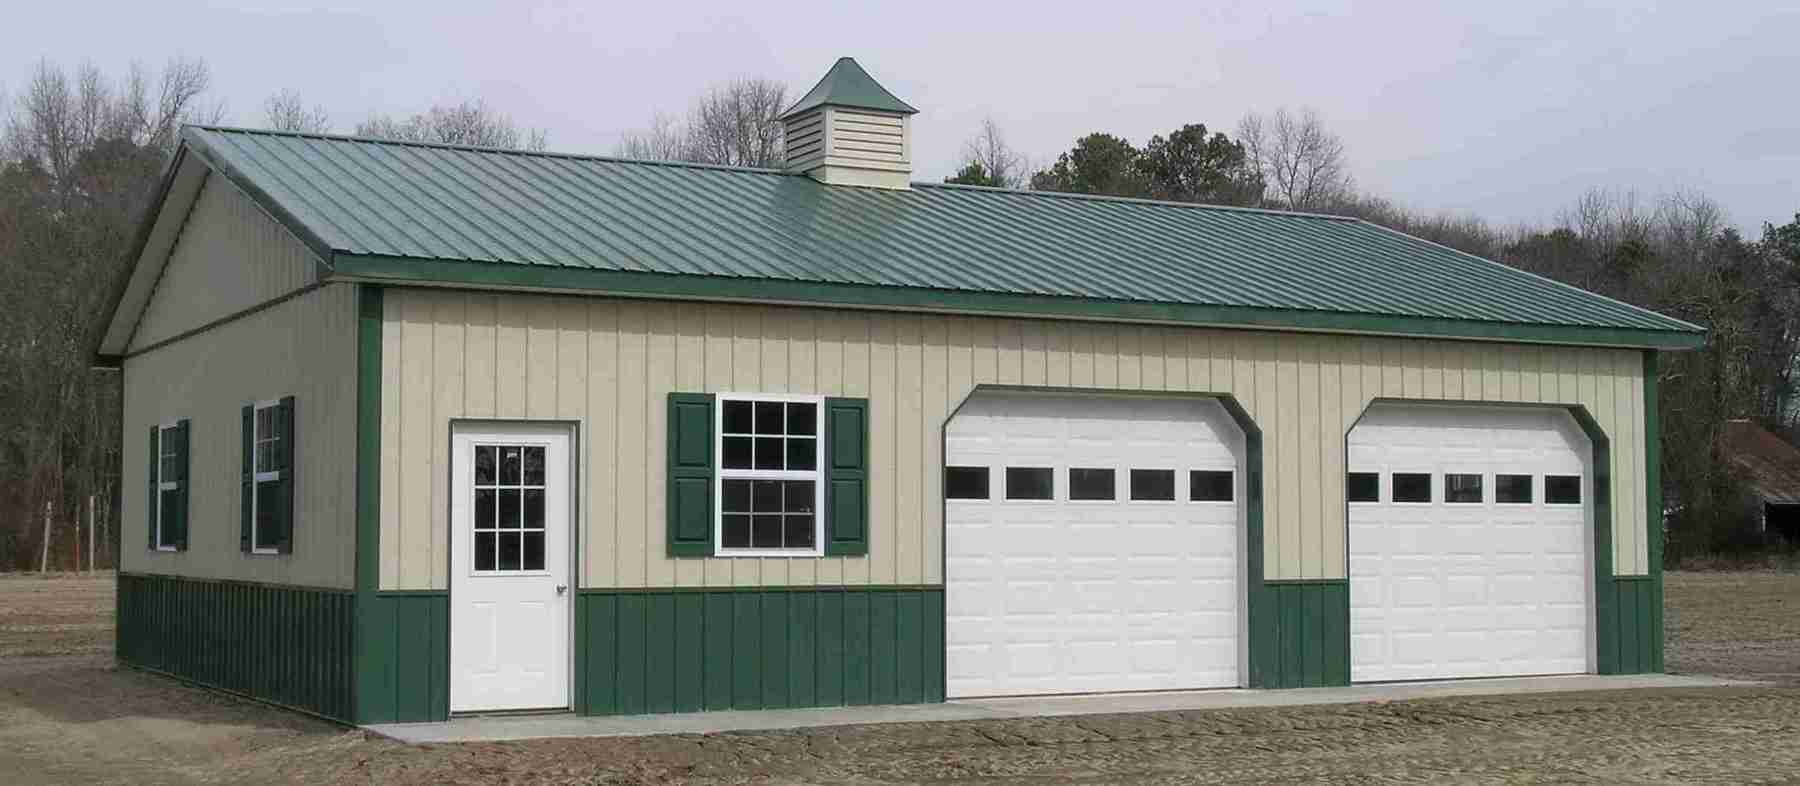 Pole barn garage kits 101 metal building homes for Pole barn homes pictures